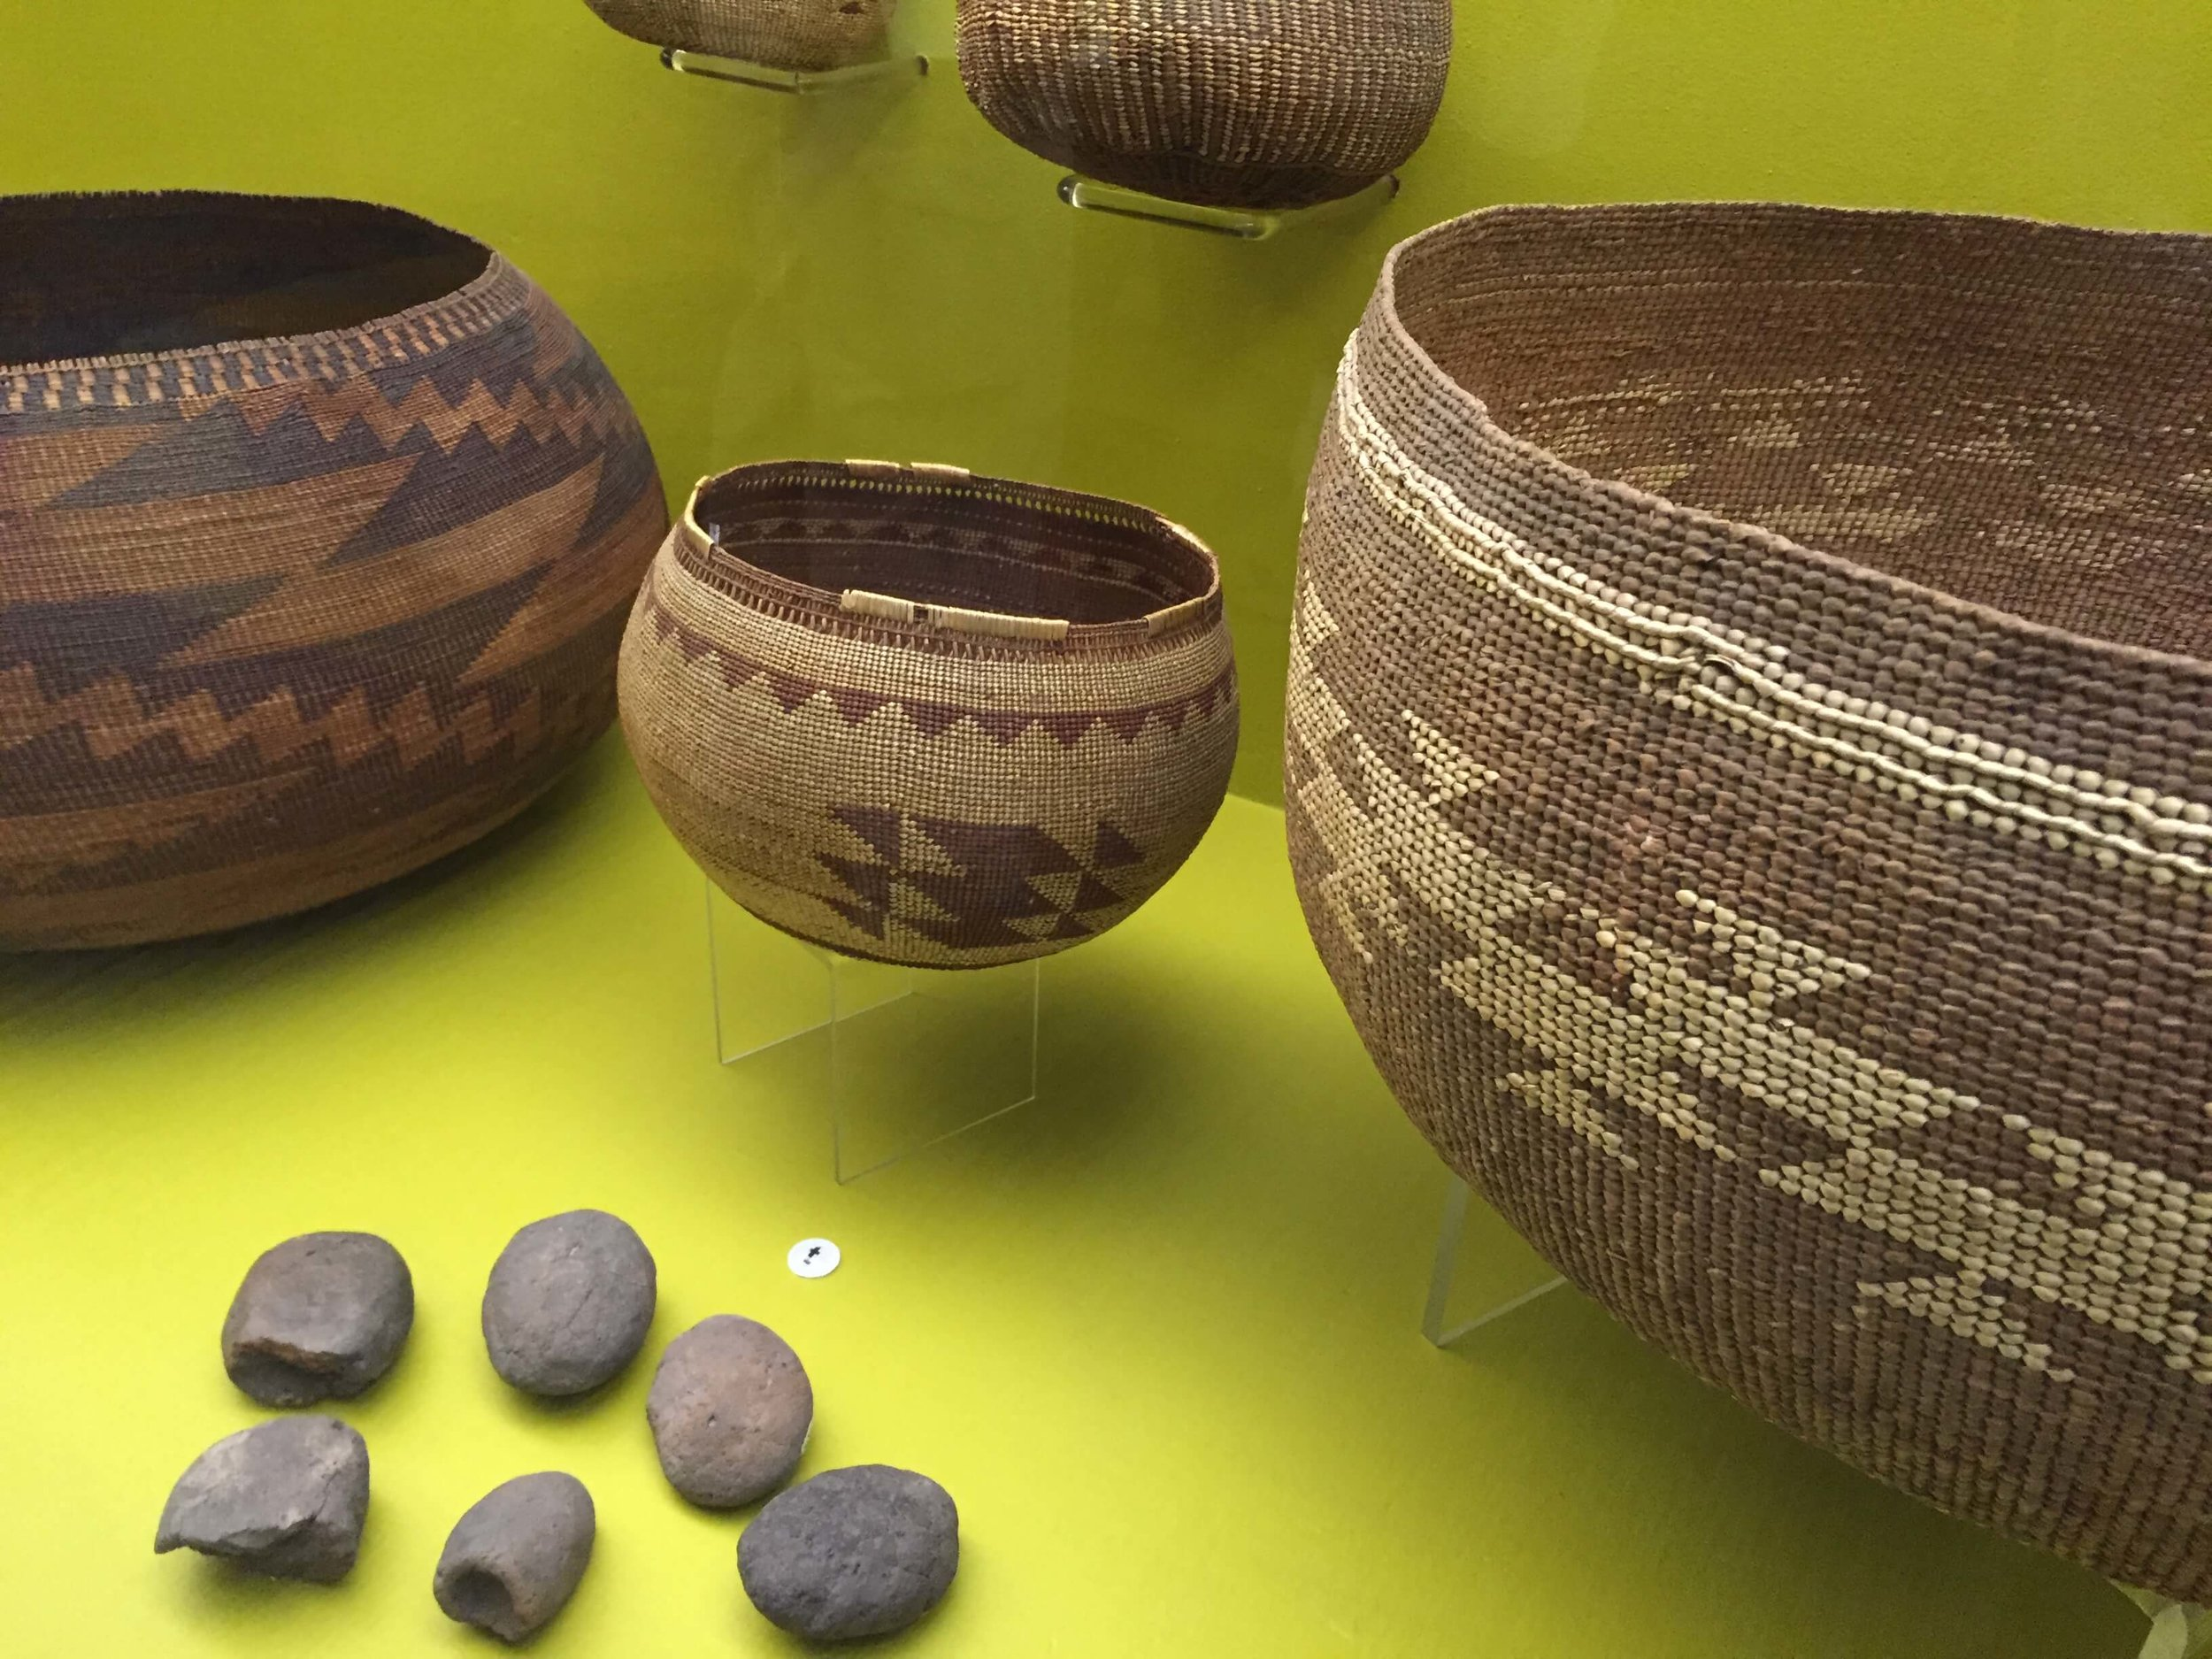 4-San Joaquin County-Historical Museum-The Sibbett Group-Cooking-Baskets.jpg